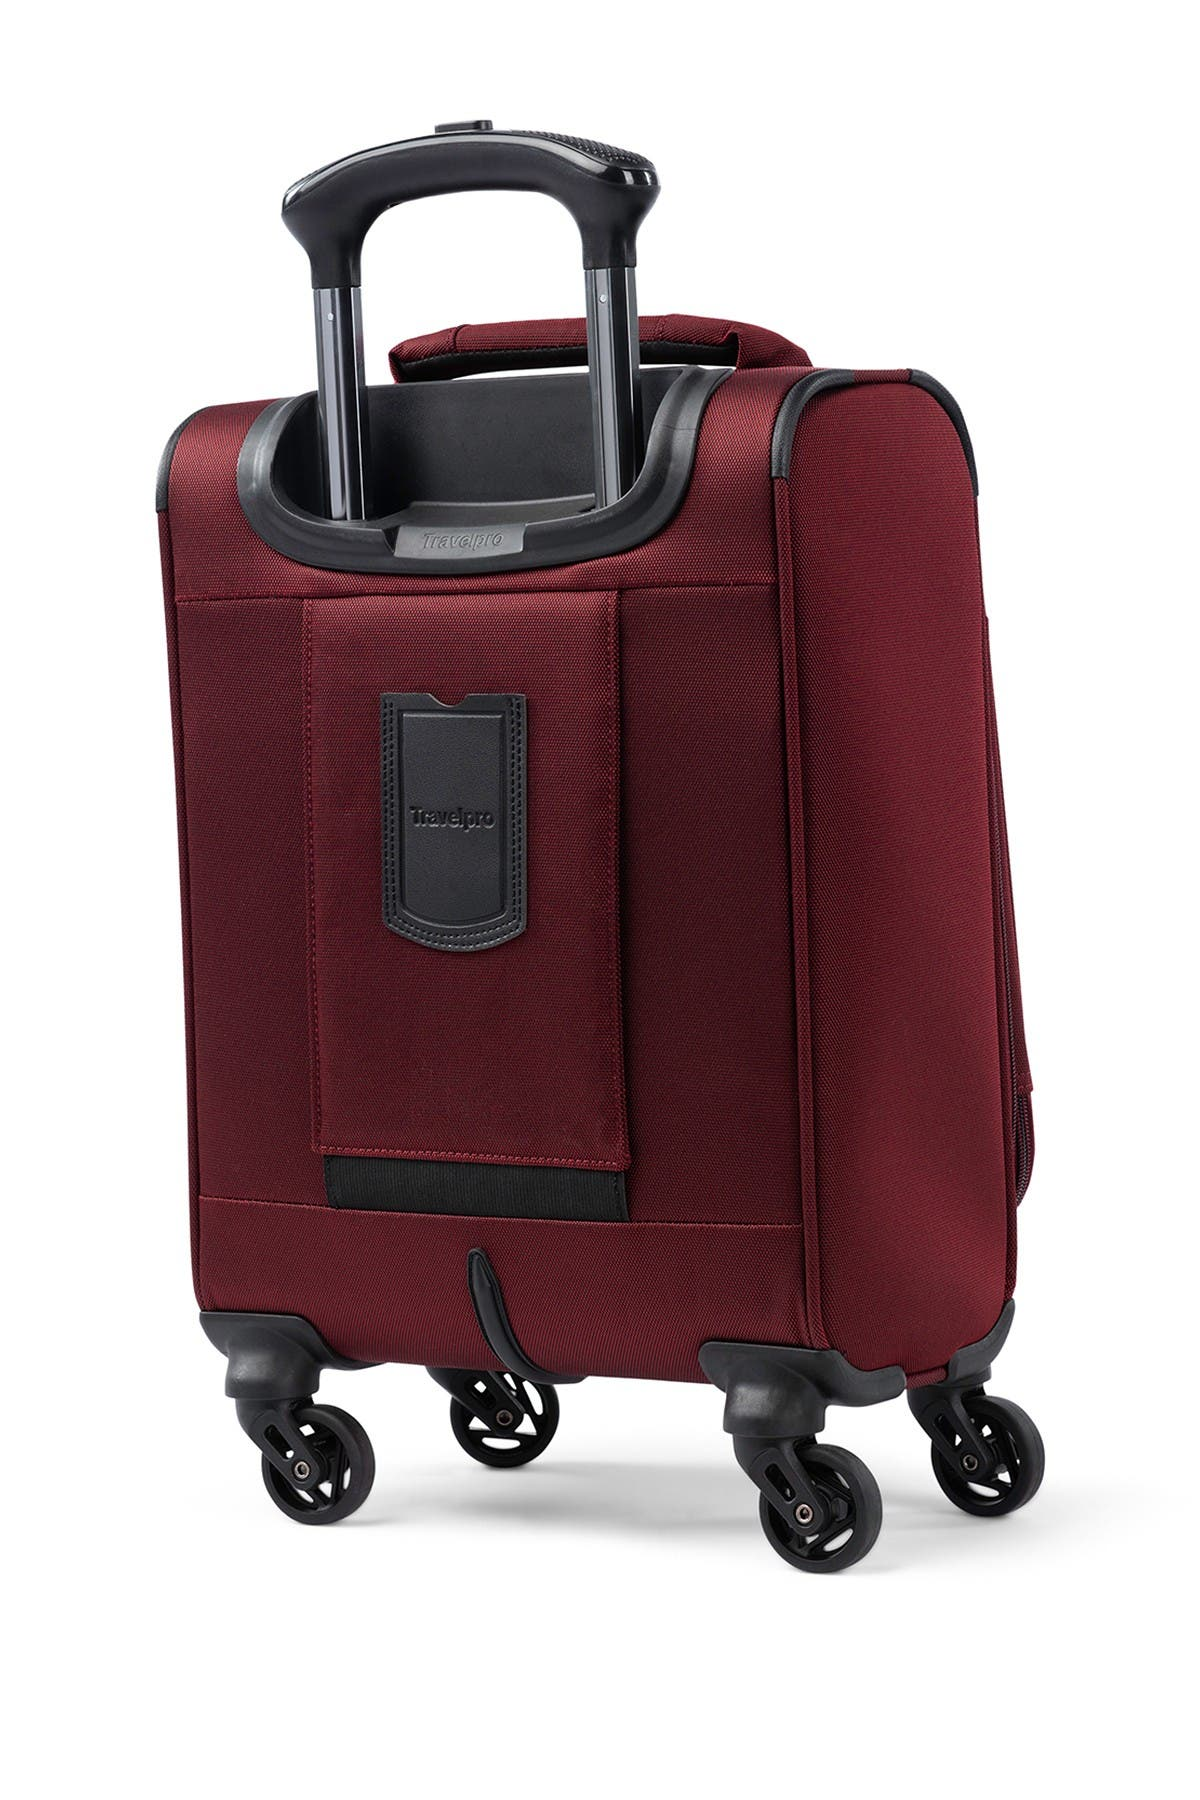 TRAVELPRO Pilot Air Elite Expandable Compact Boarding Bag Spinner